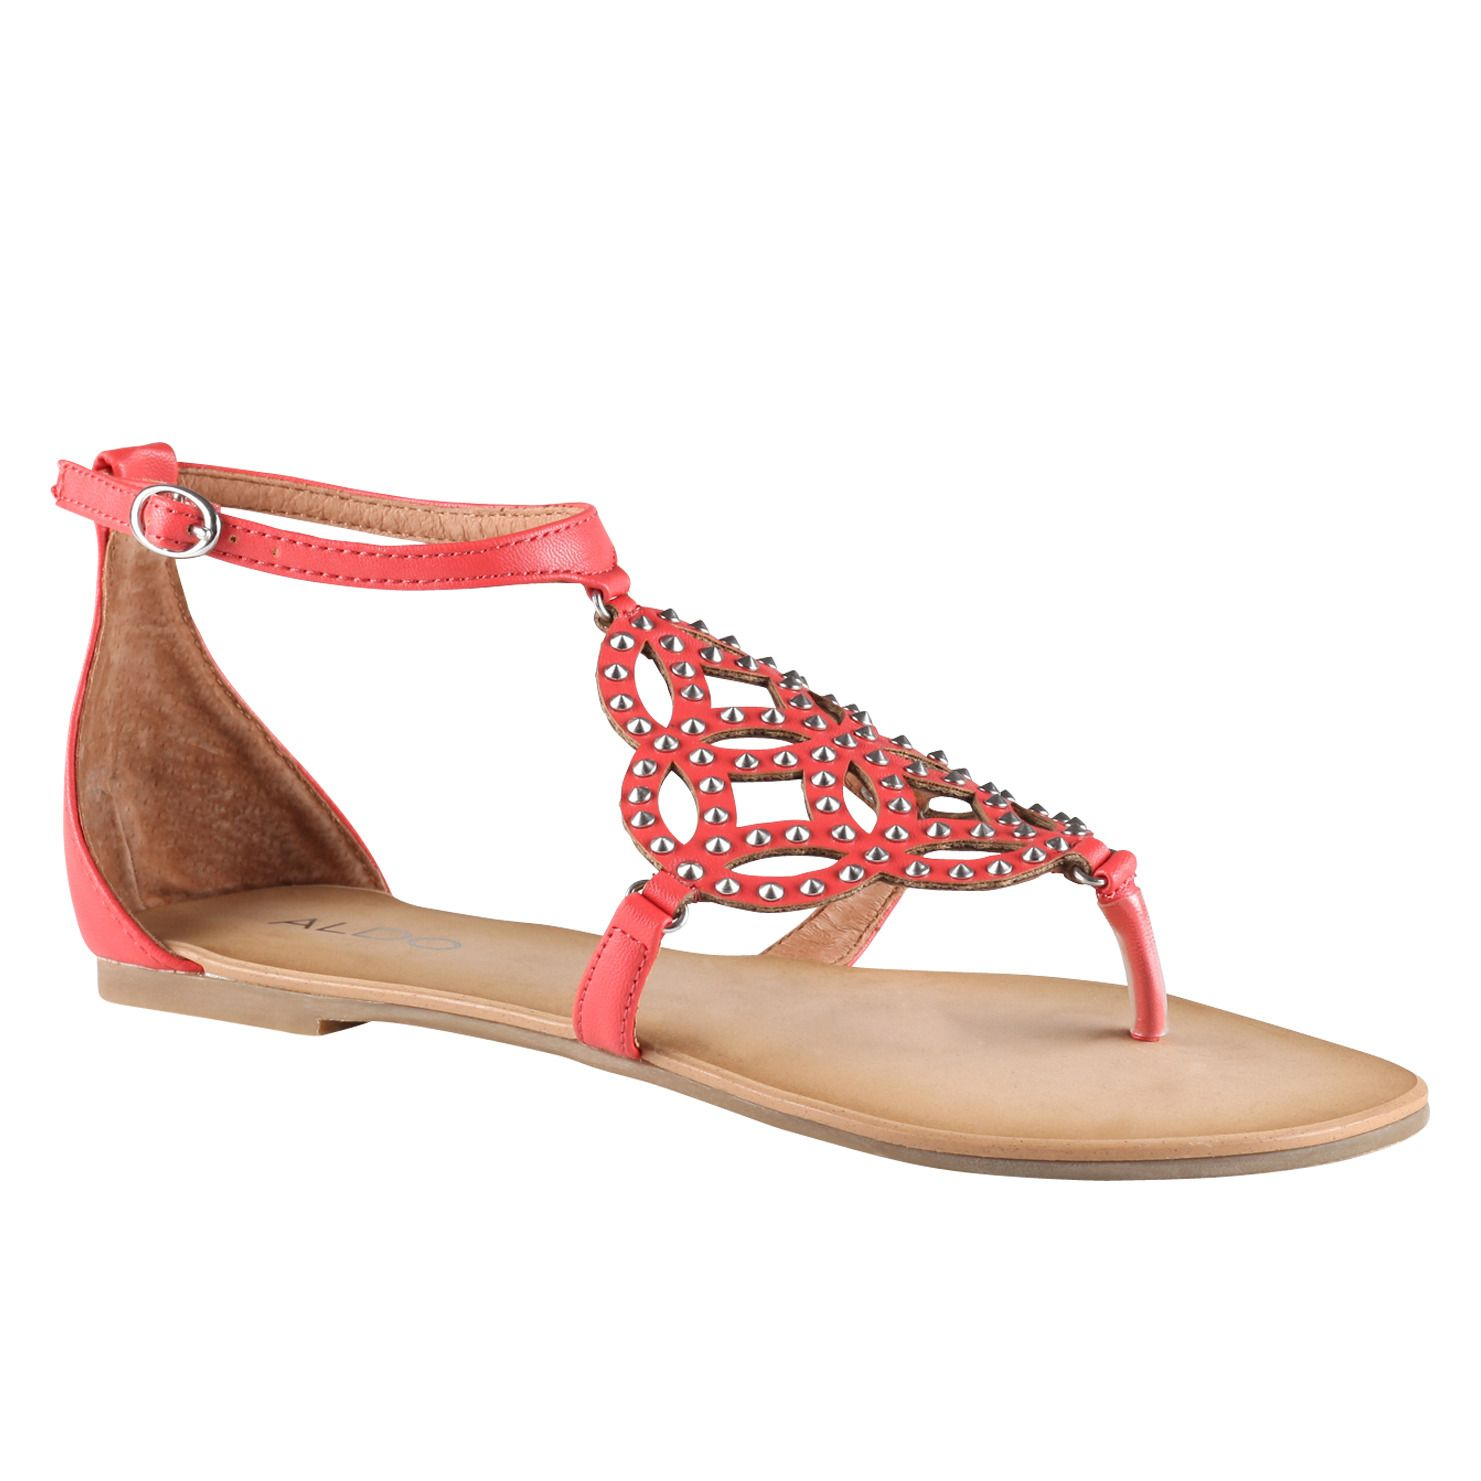 9d9319a528fb SORA - women s flats sandals for sale at ALDO Shoes.  Marianne Glass Marrou  what do you think of these for the wedding  (for me)